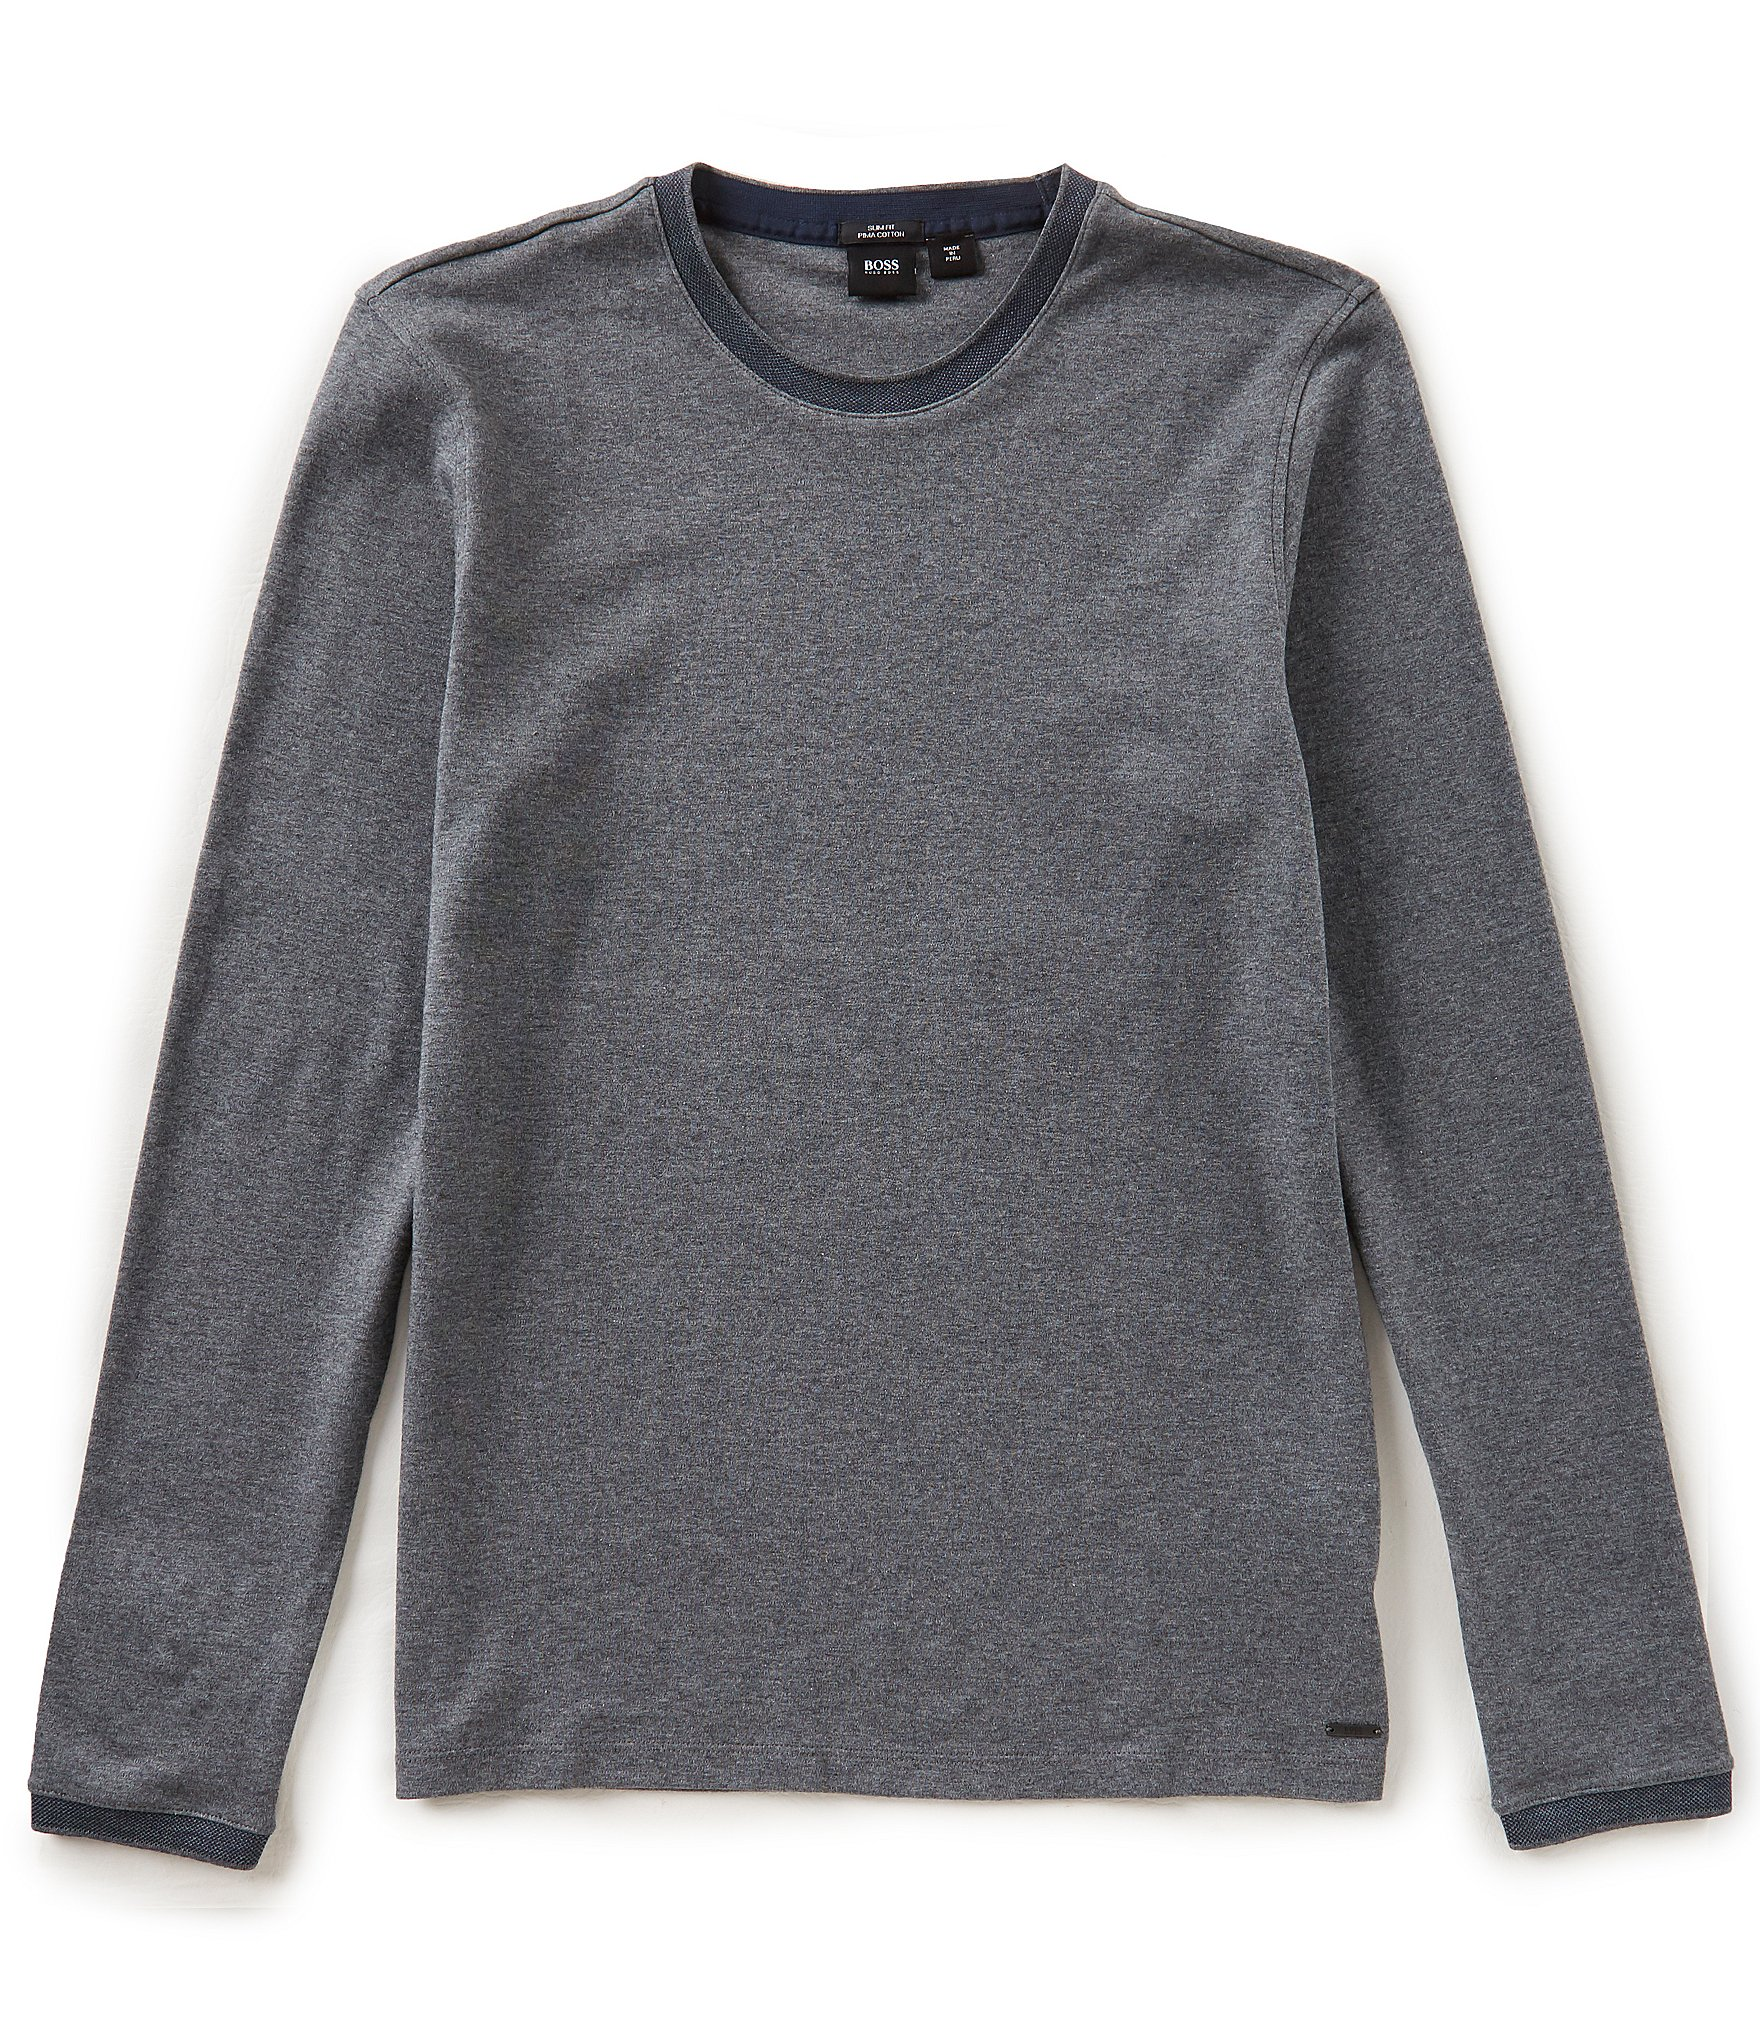 OEM Service OEM Service product details Chinese clothing manufacturers custom wholesale plain long sleeve pima cotton t shirt travabjmsh.ga Show travabjmsh.gat Details Style Chinese clothing manufacturers custom wholesale plain long sleeve pima cotton t shirt Material 60% cotton, 40% polyester Design knit tee featuring a crew neck, long sleeves, and a.